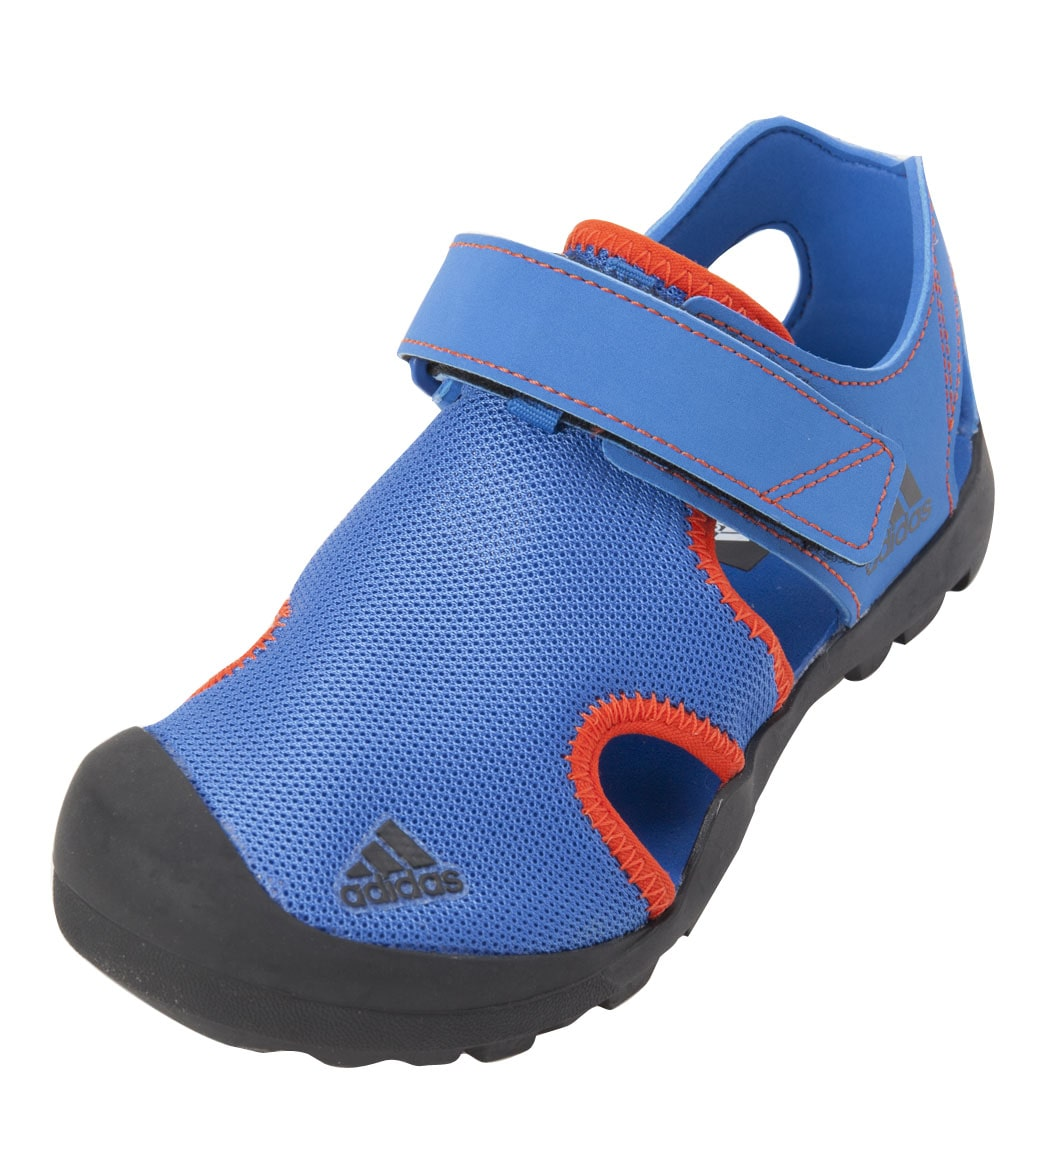 Adidas Kids' Captain Toey Water K Shoes at SwimOutlet.com - Free Shipping